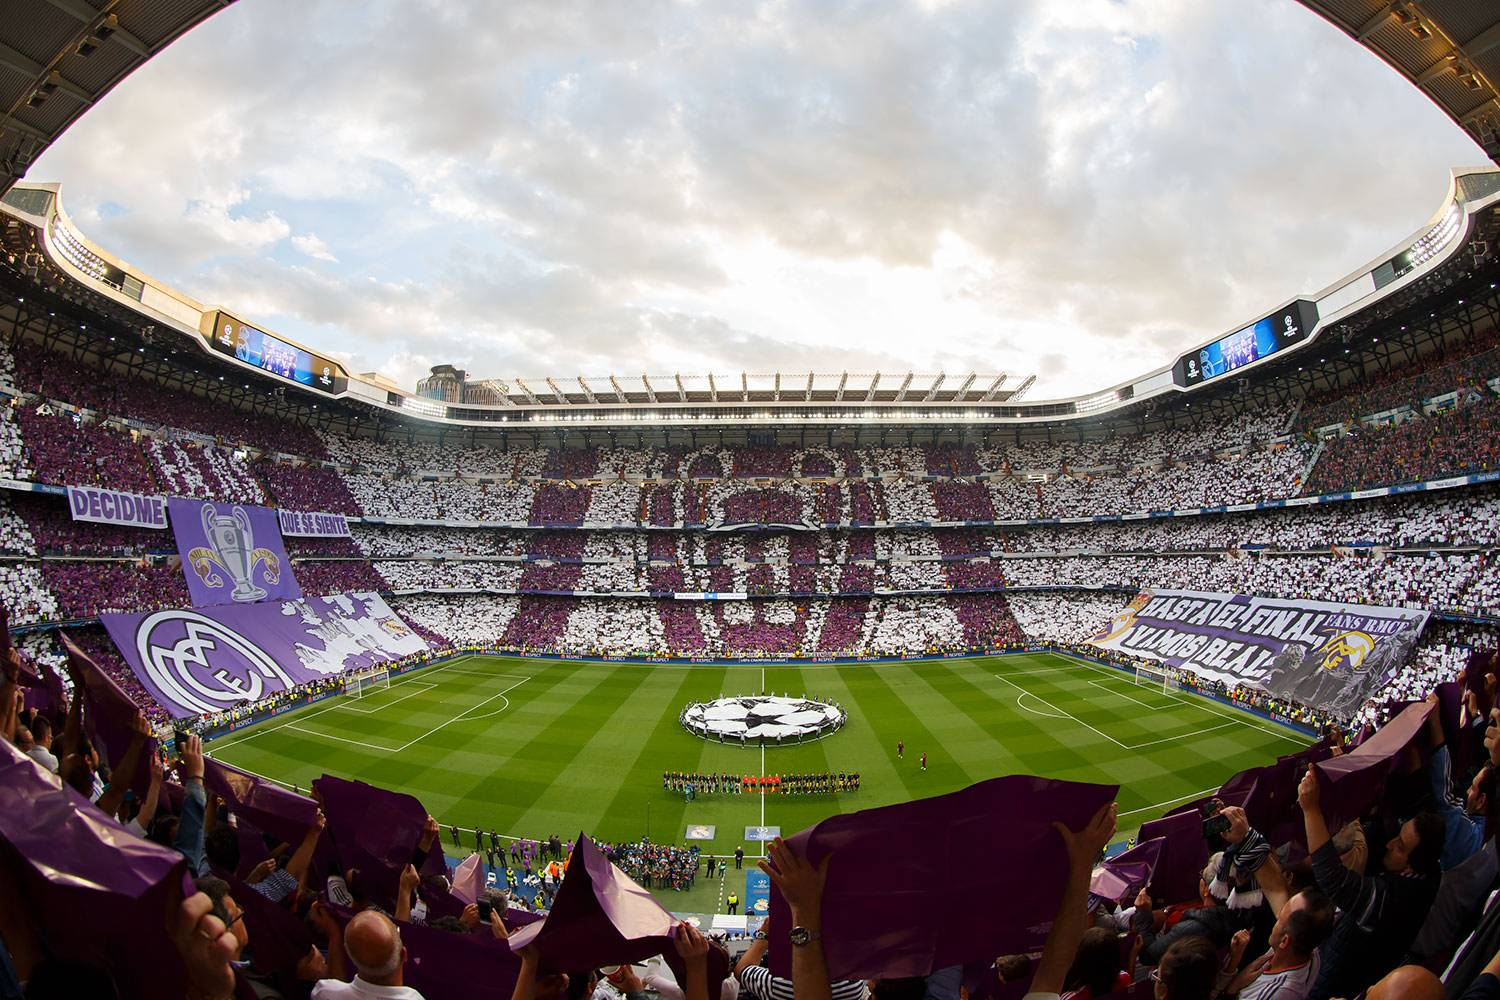 Real Madrid - Real Madrid - Atlético de Madrid - 03-05-2017